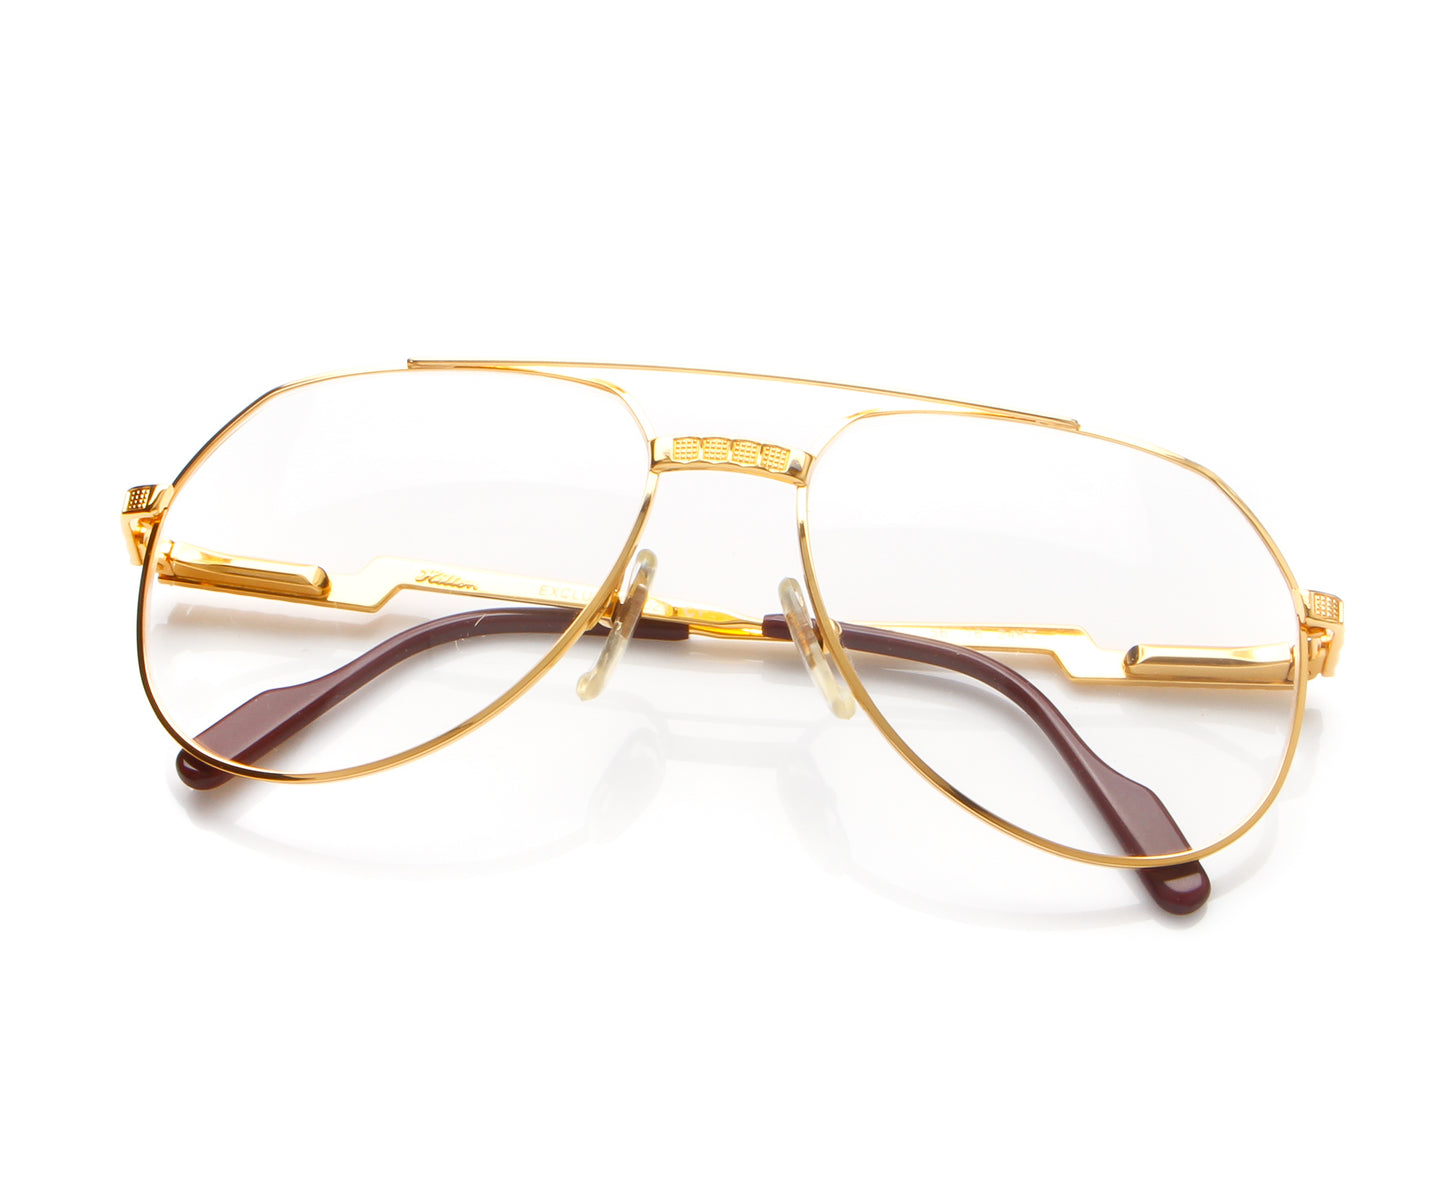 Vintage Hilton Exclusive 021 1 24KT Thumb, Hilton , glasses frames, eyeglasses online, eyeglass frames, mens glasses, womens glasses, buy glasses online, designer eyeglasses, vintage sunglasses, retro sunglasses, vintage glasses, sunglass, eyeglass, glasses, lens, vintage frames company, vf